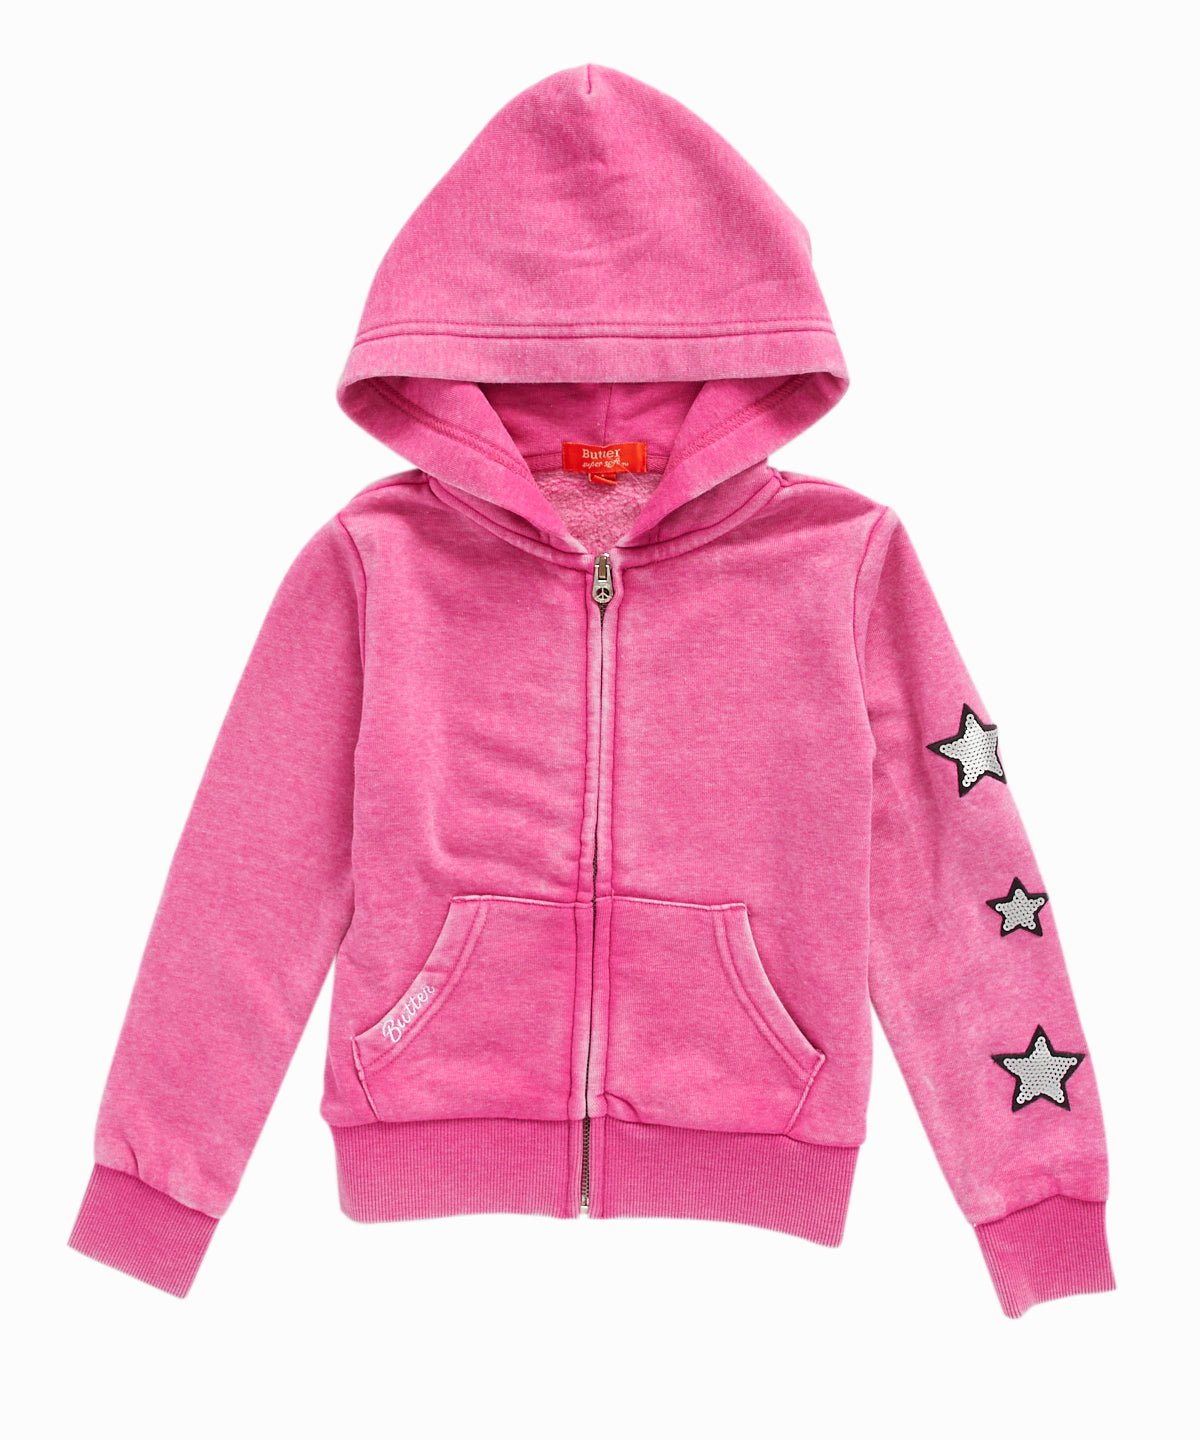 Crystal Unicorn Zip-Up Hooded Sweatshirt